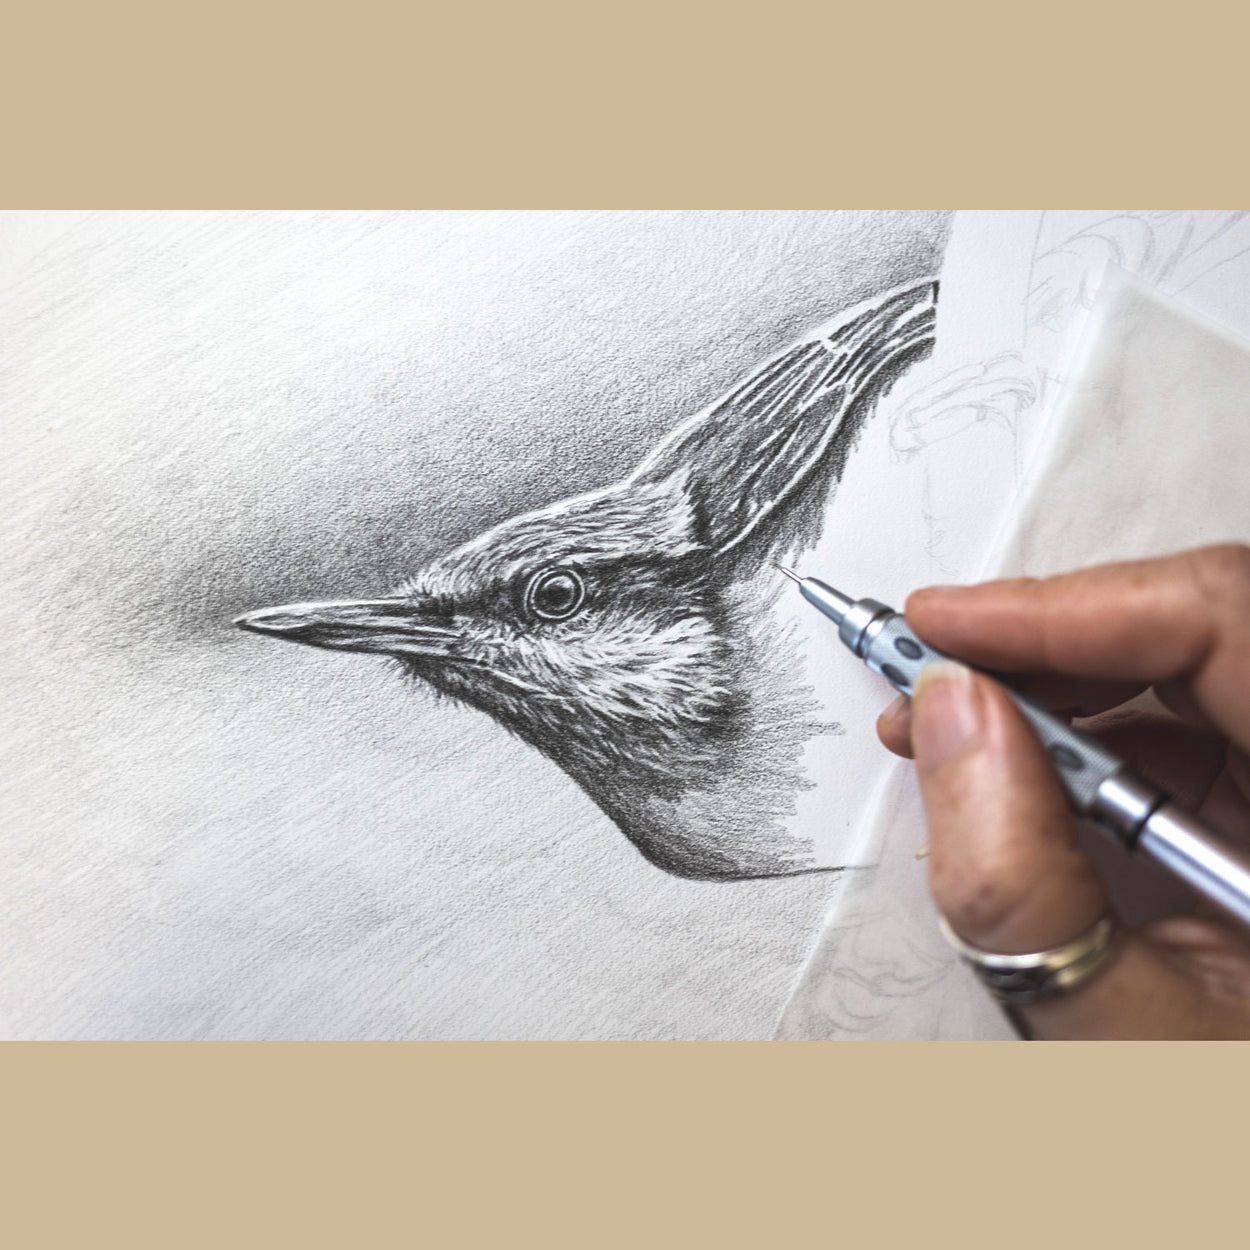 Nuthatch progress photo pencil drawing - The Thriving Wild